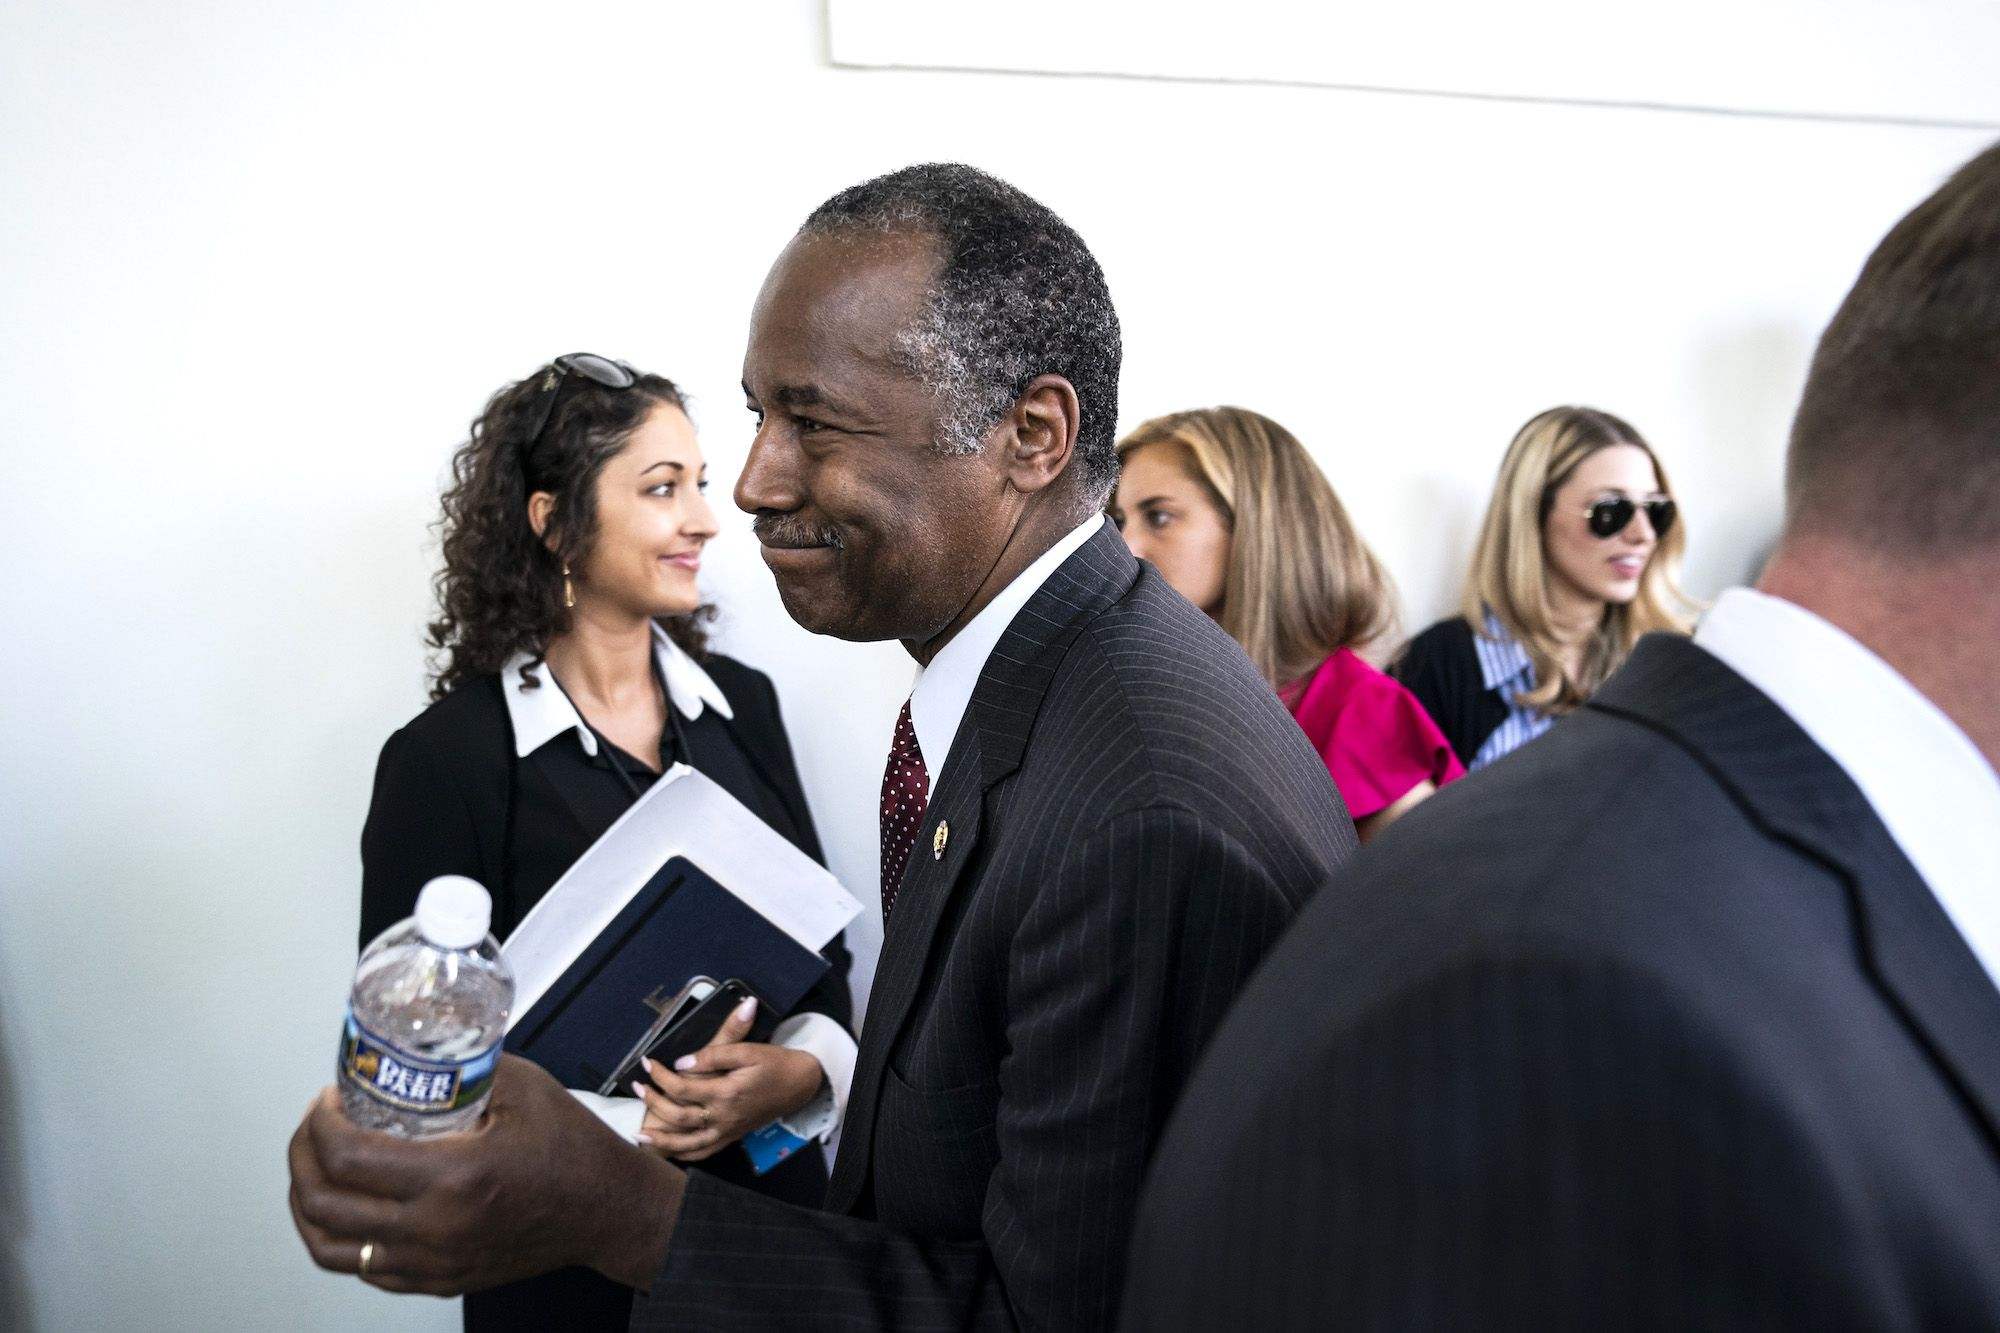 Ben Carson Knows Nothing About His Job and Cares Less